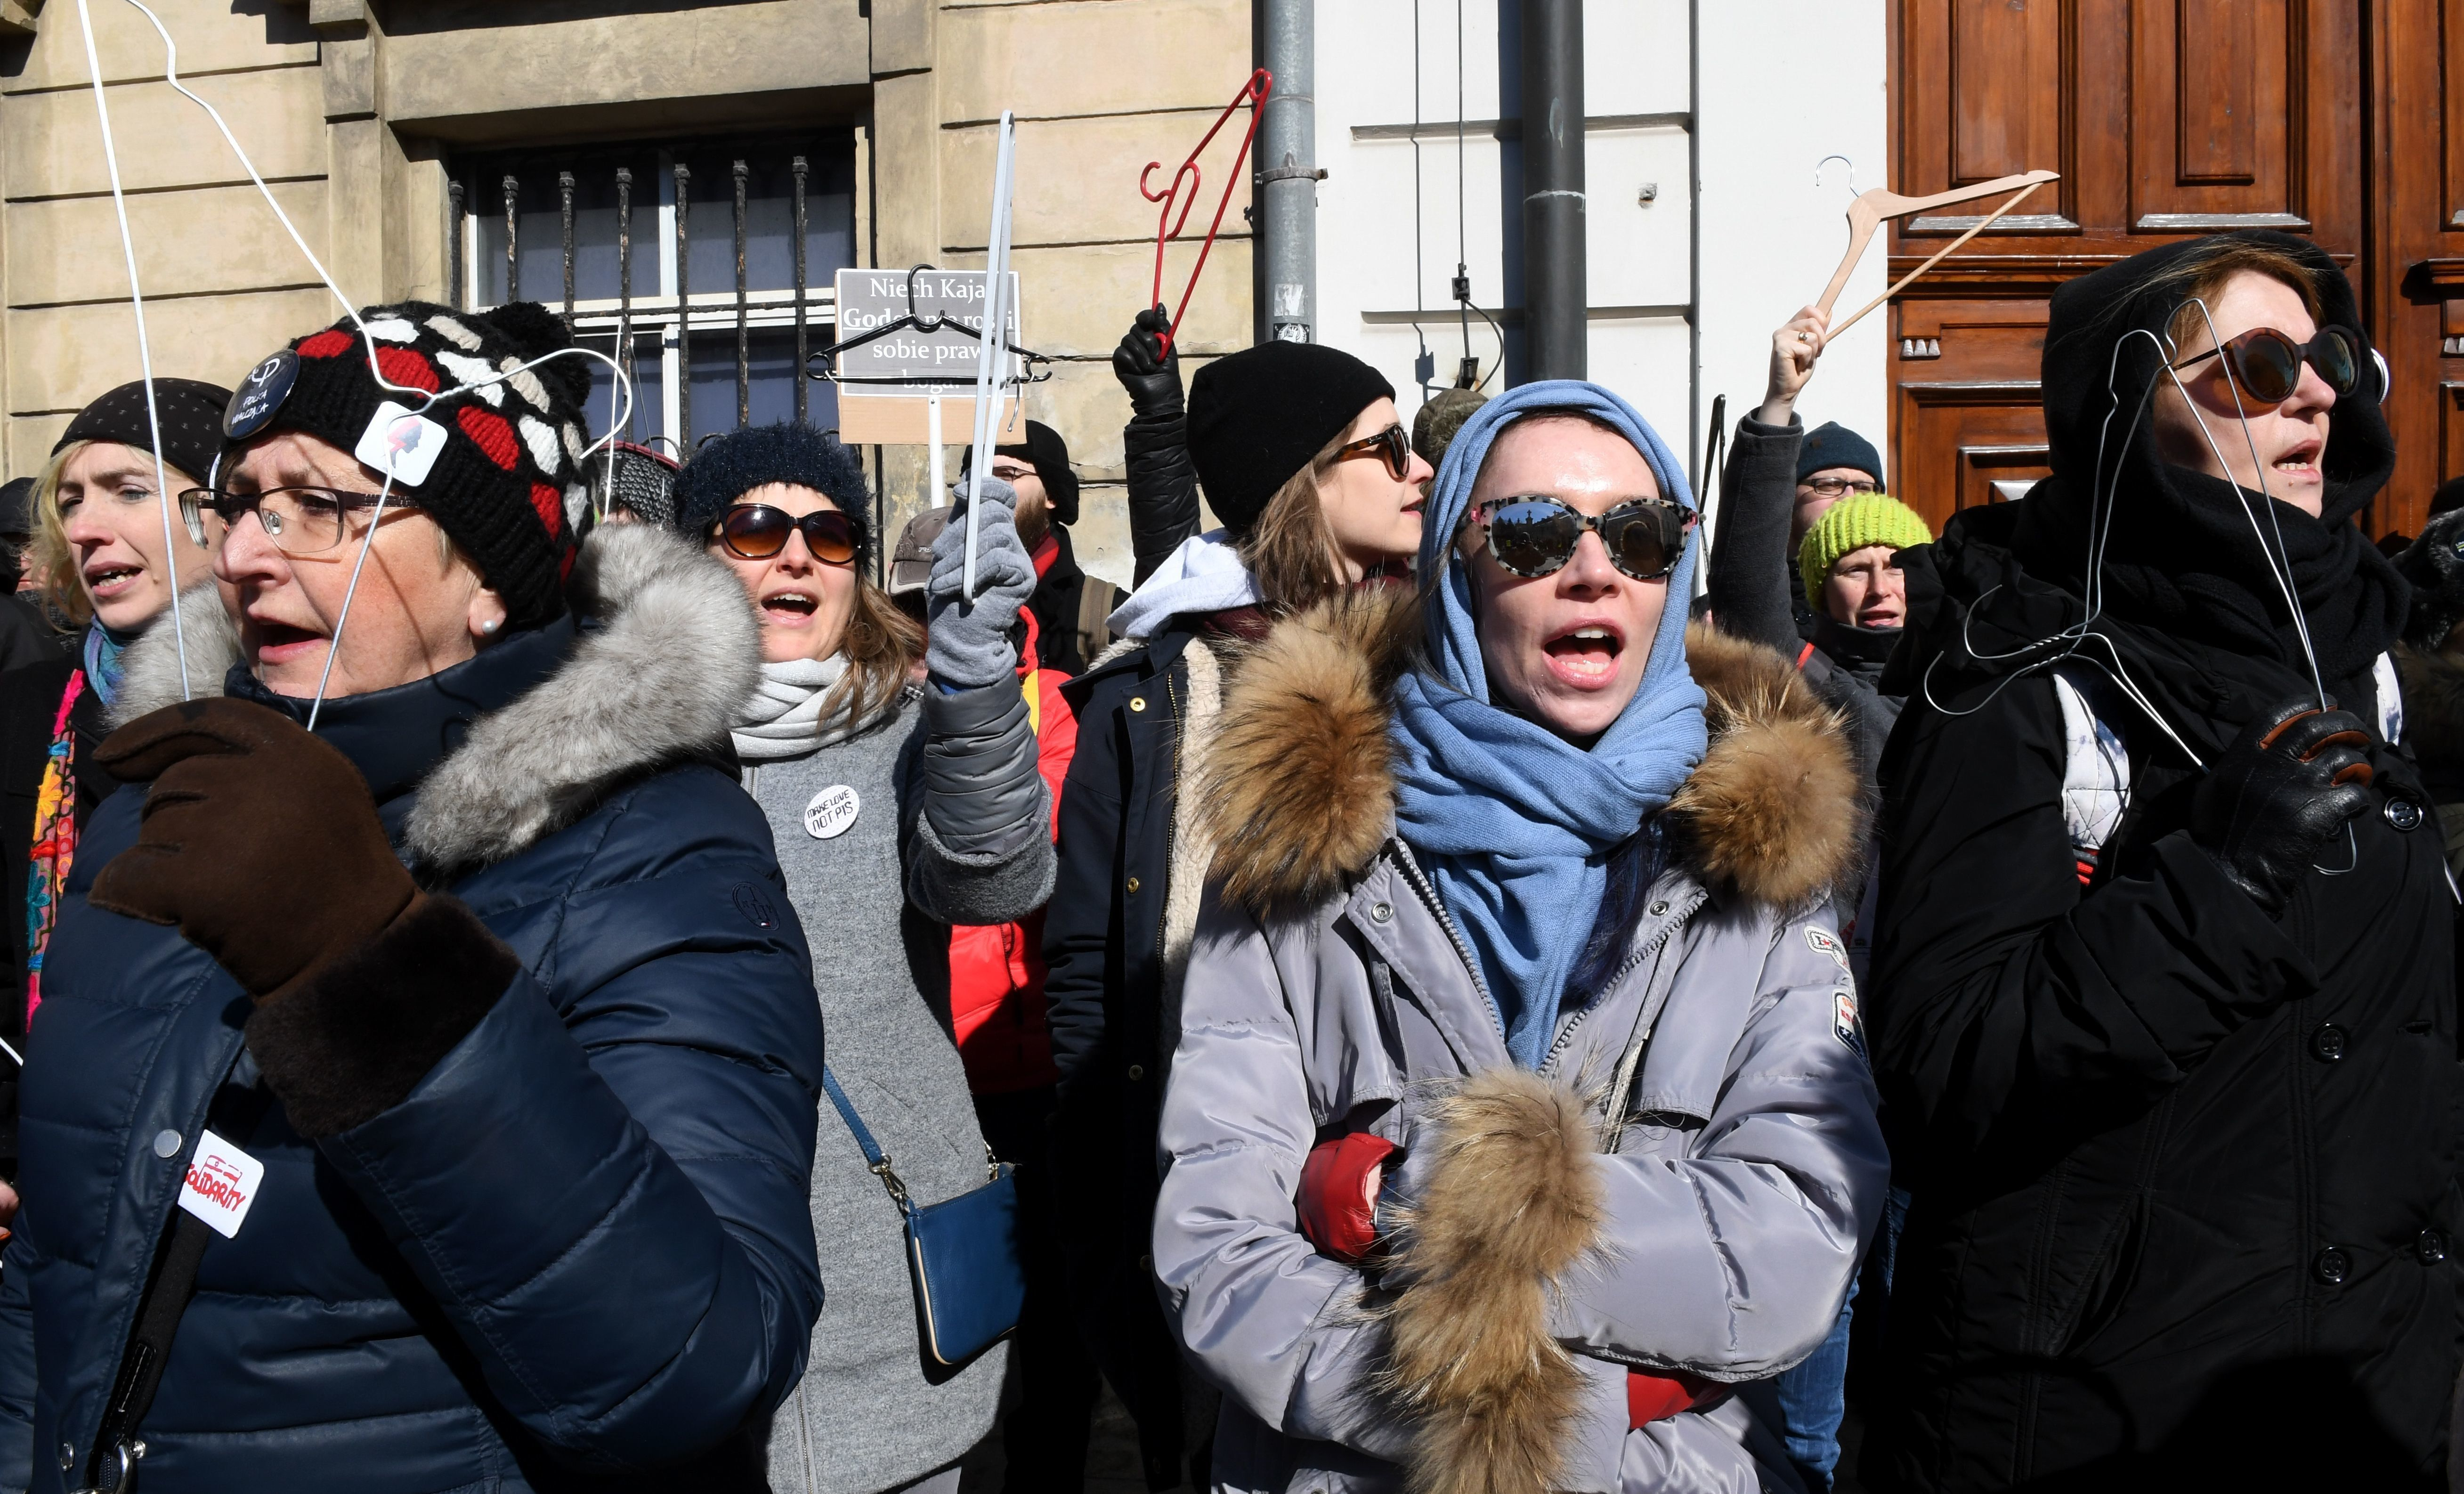 Women hold up coat hangers as they demonstrate in front of the seat of the Warsaw archdiocese on March 18, 2018 in a protest against what they call the Catholic Churchs intrusion into politics by supporting a new measure to tighten the already restrictive law on abortion. / AFP PHOTO / JANEK SKARZYNSKI        (Photo credit should read JANEK SKARZYNSKI/AFP/Getty Images)